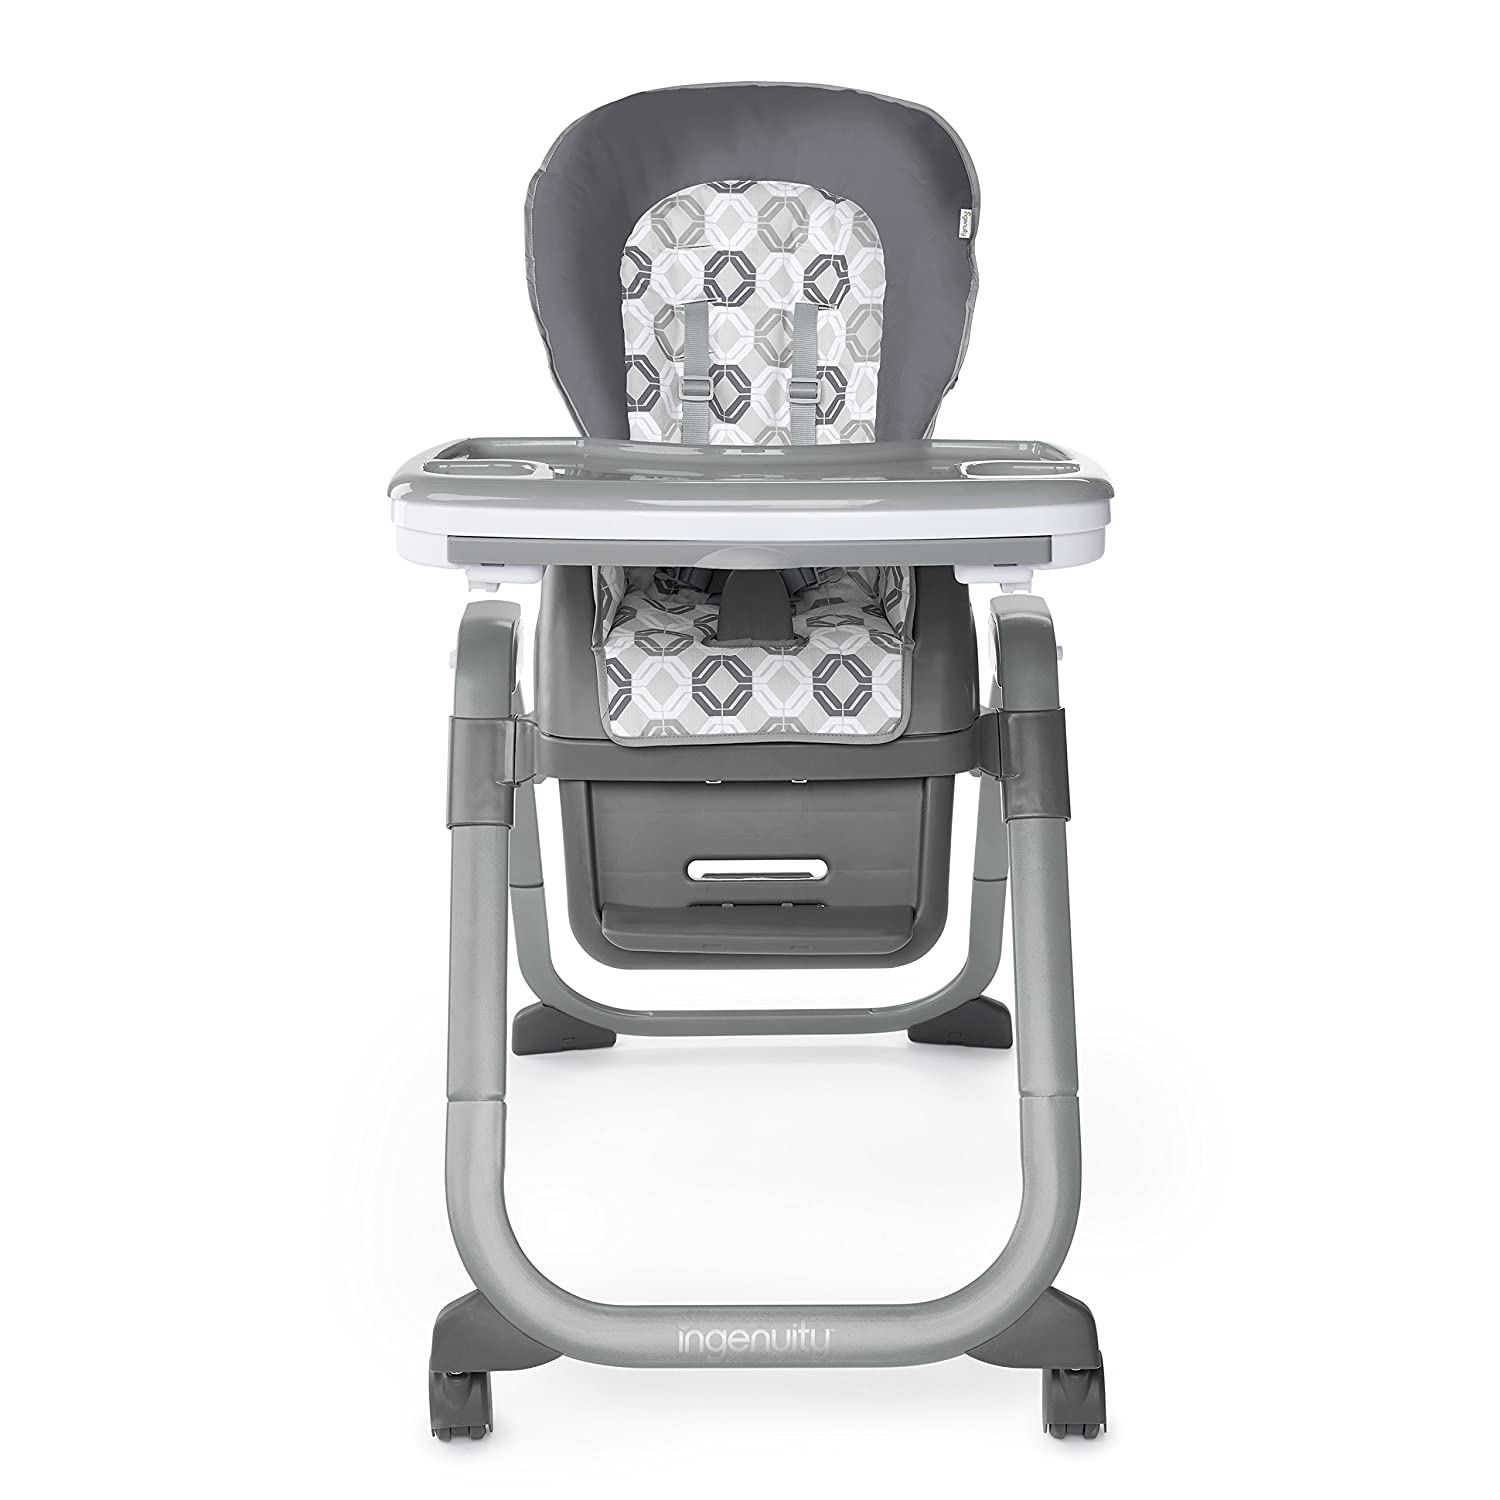 Connolly Ingenuity SmartServe 4-in-1 High Chair with Swing Out Tray High Chair Toddler Chair and Booster